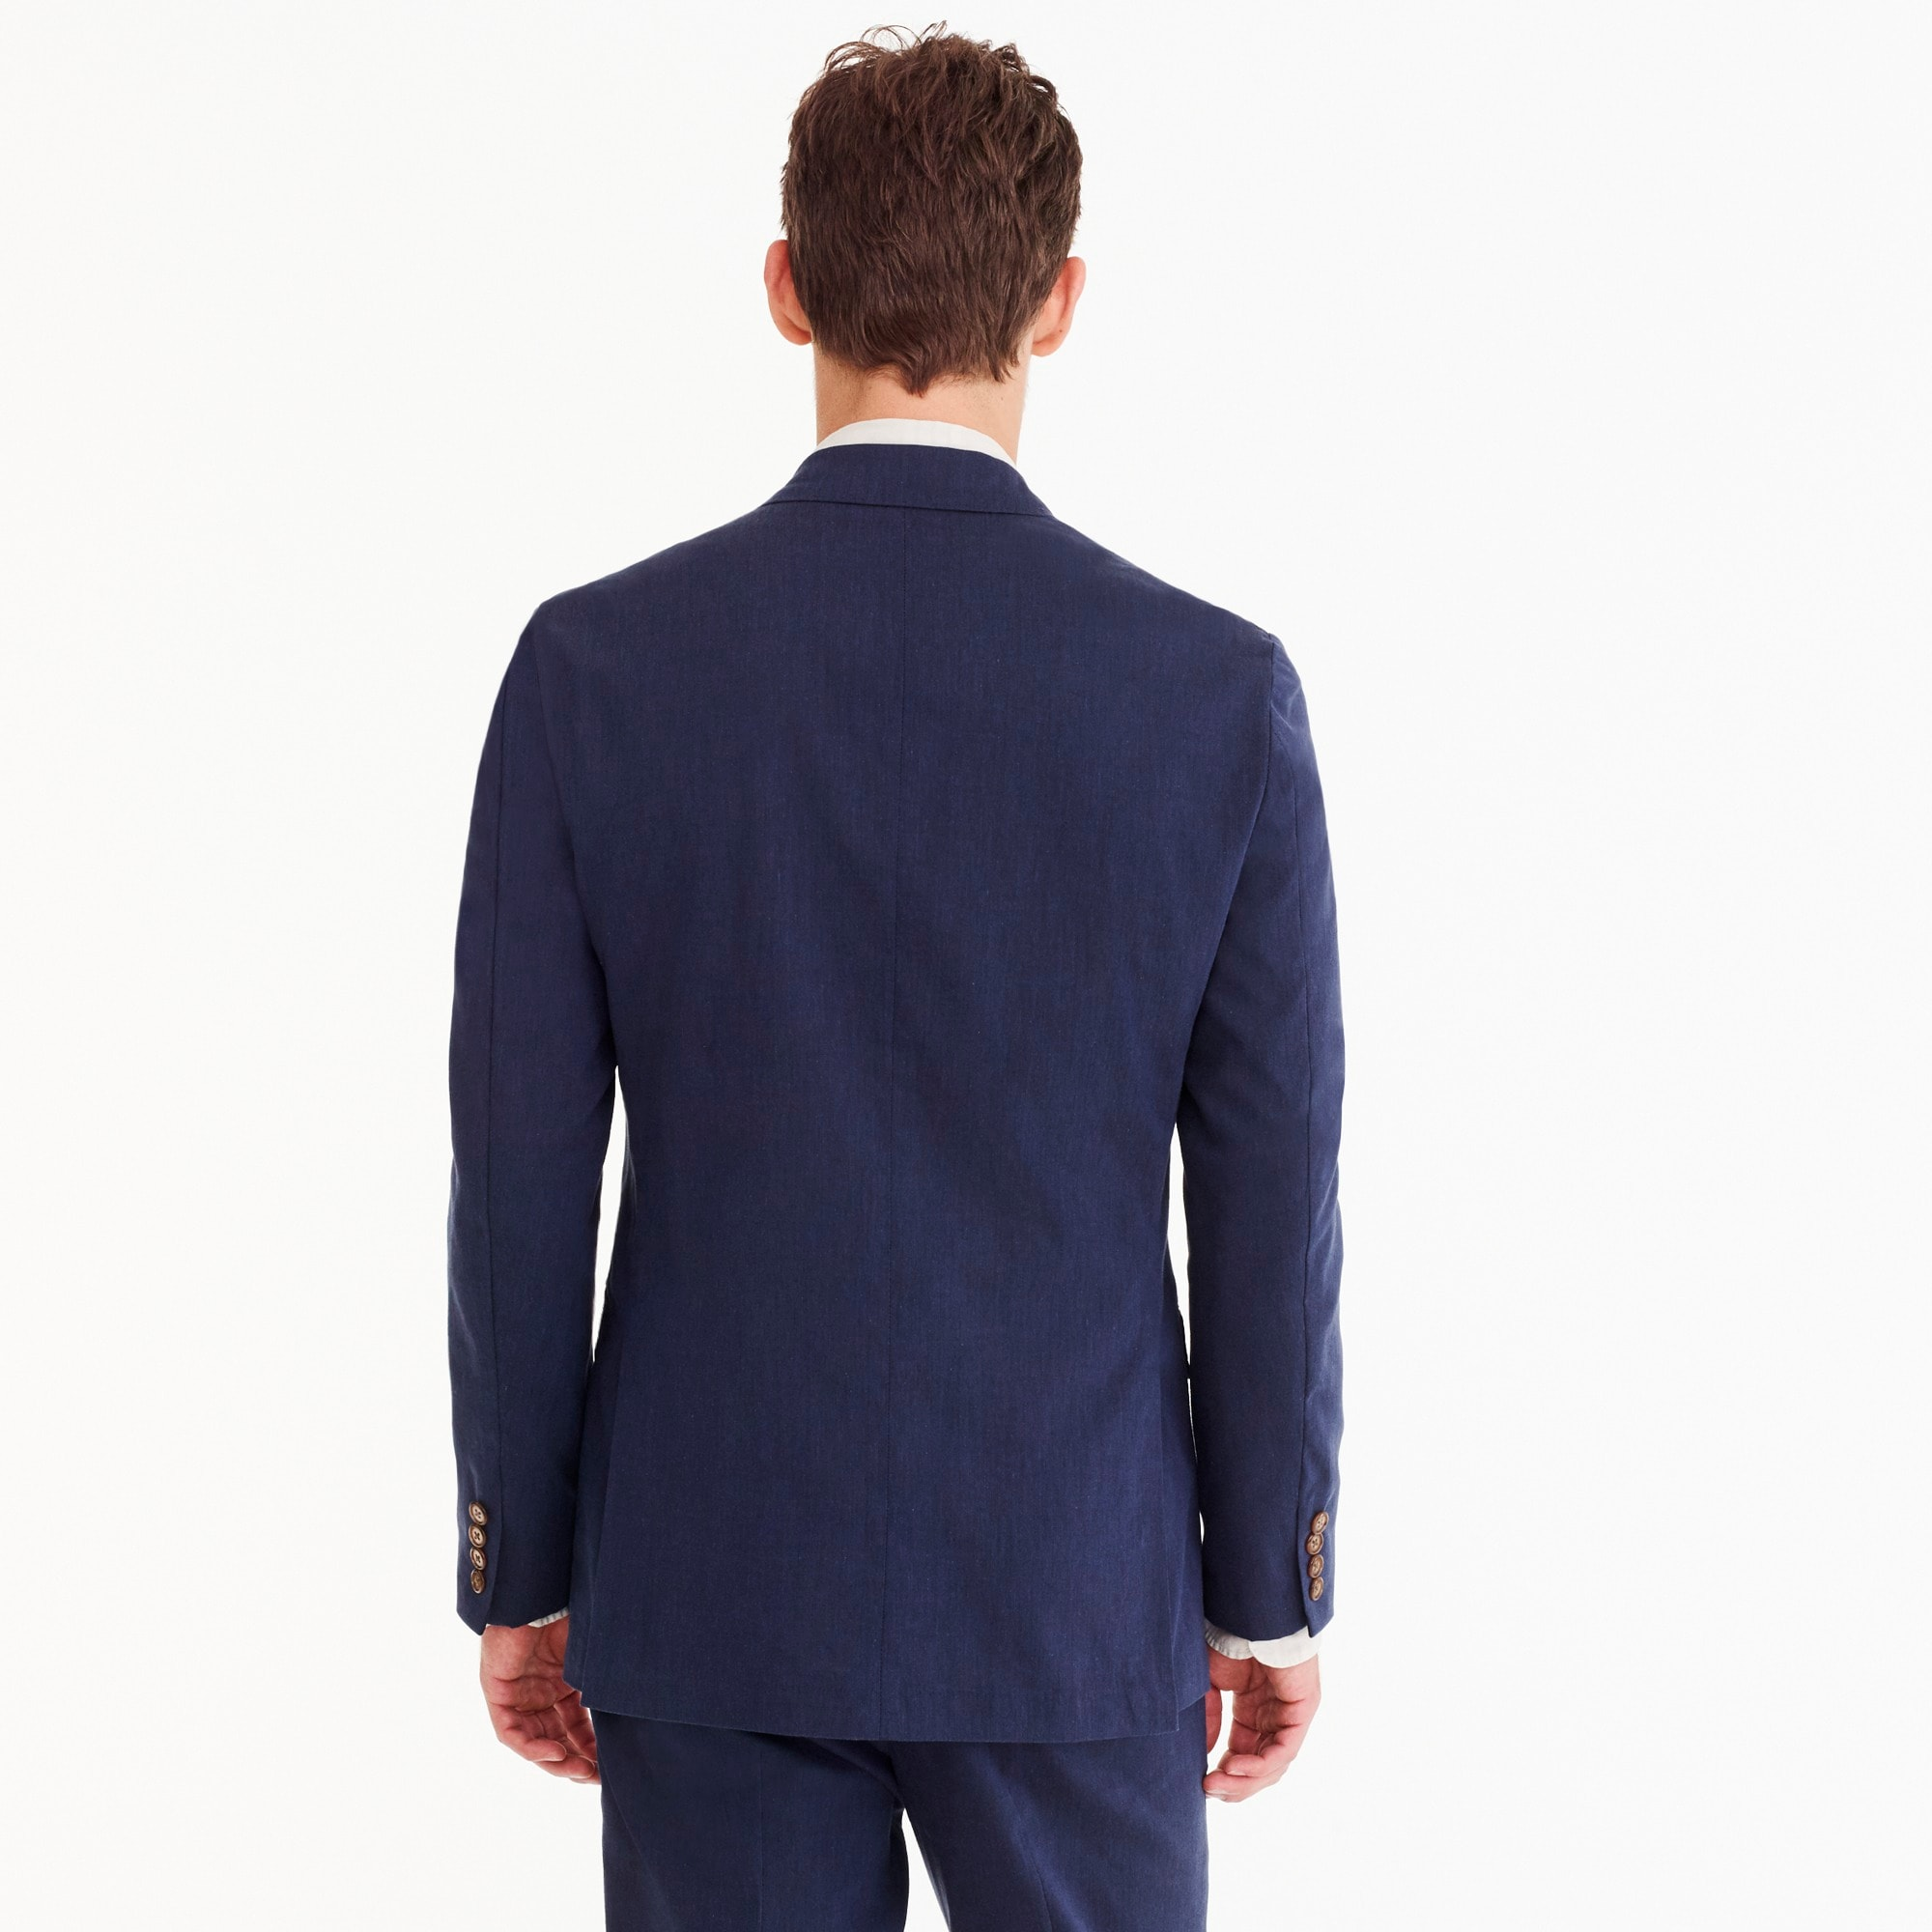 Image 3 for Ludlow Classic-fit unstructured suit jacket in stretch cotton